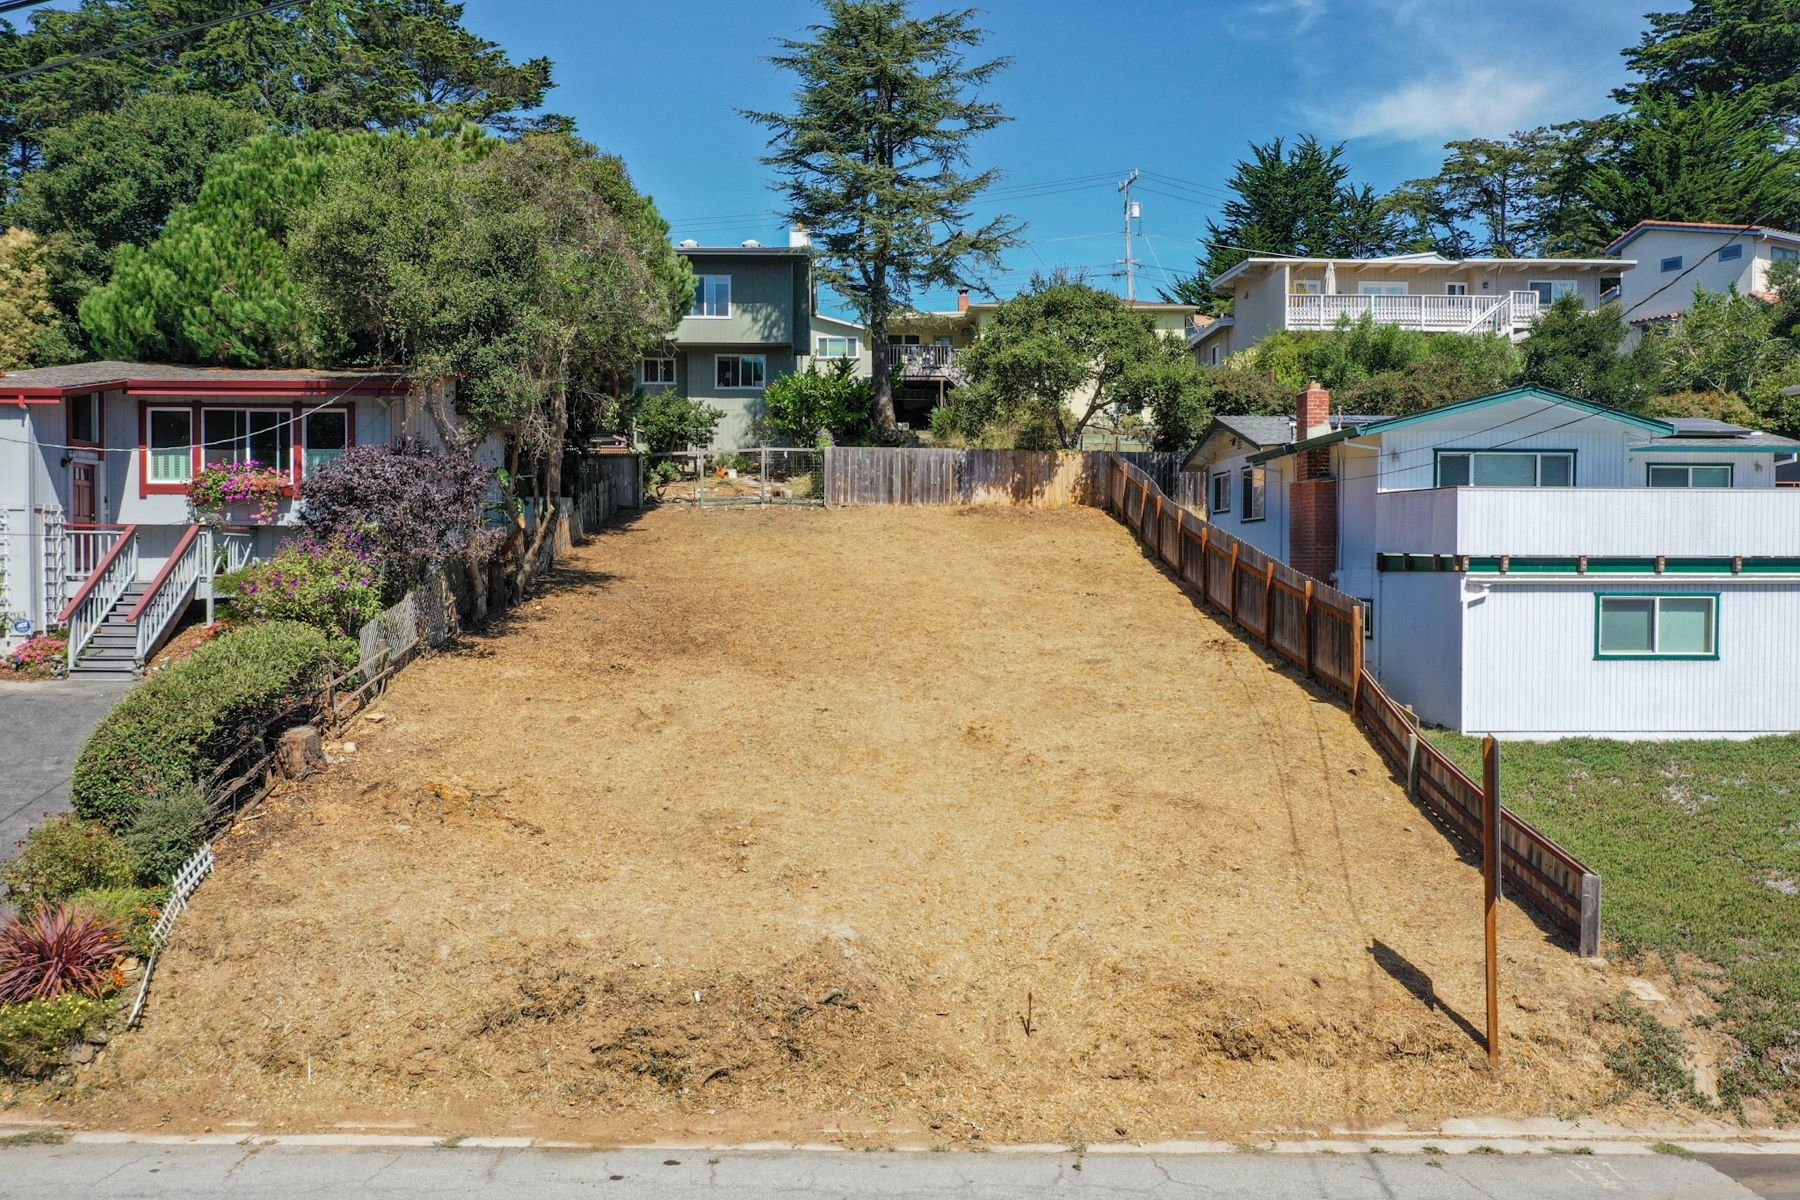 Land for Sale at Build Your Dream Home 519 Sumner Avenue Aptos, California 95003 United States